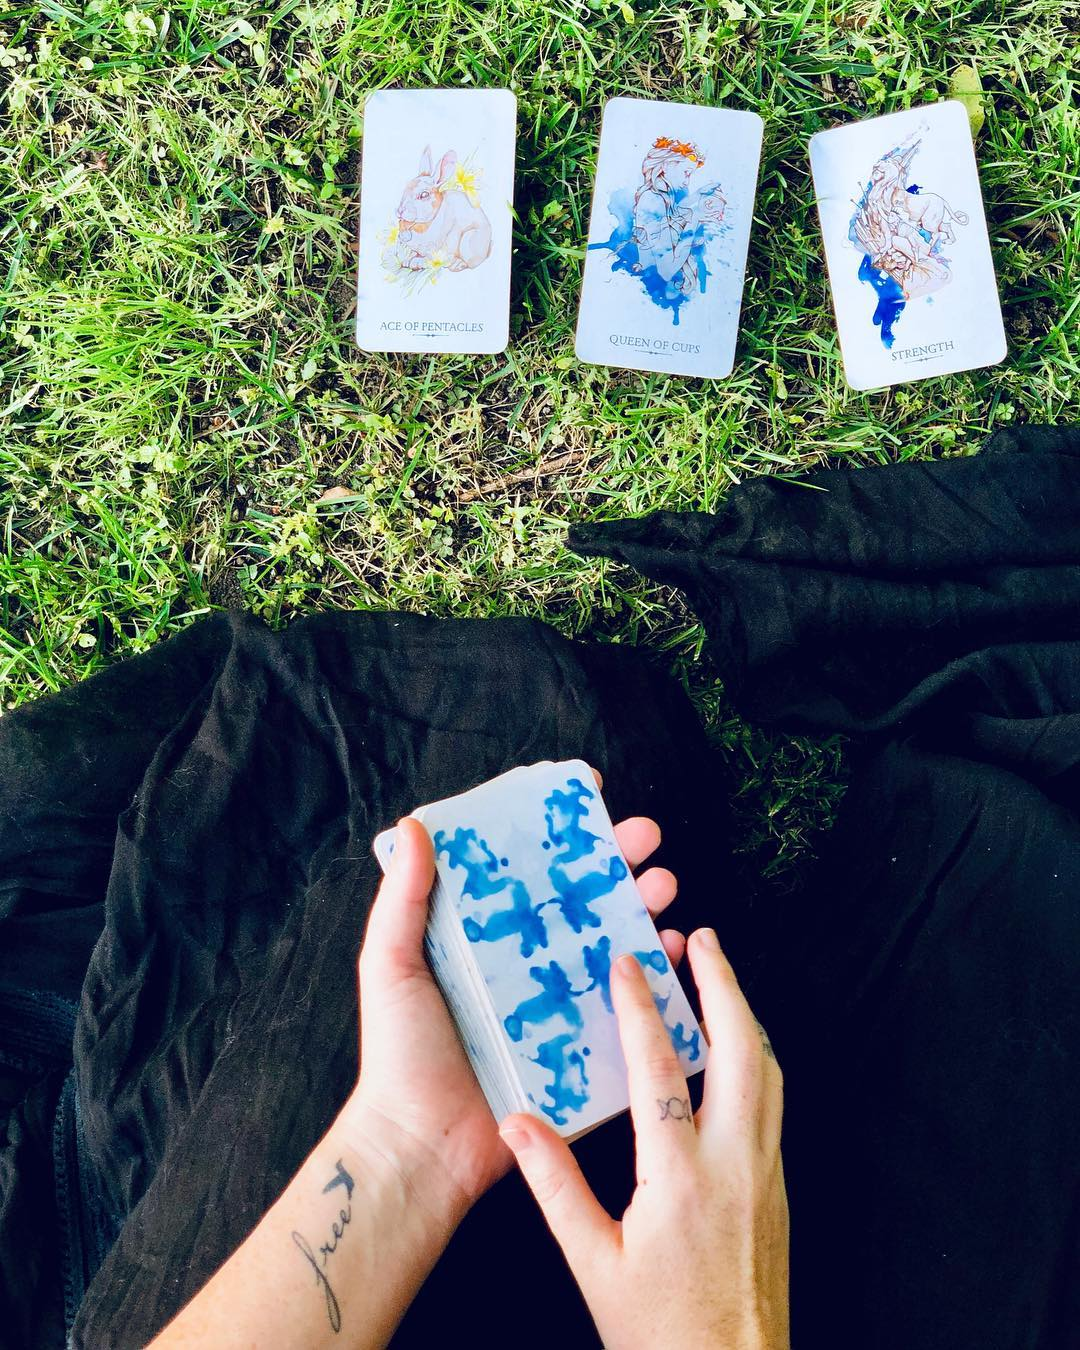 I never connected with Tarot until I found this deck.